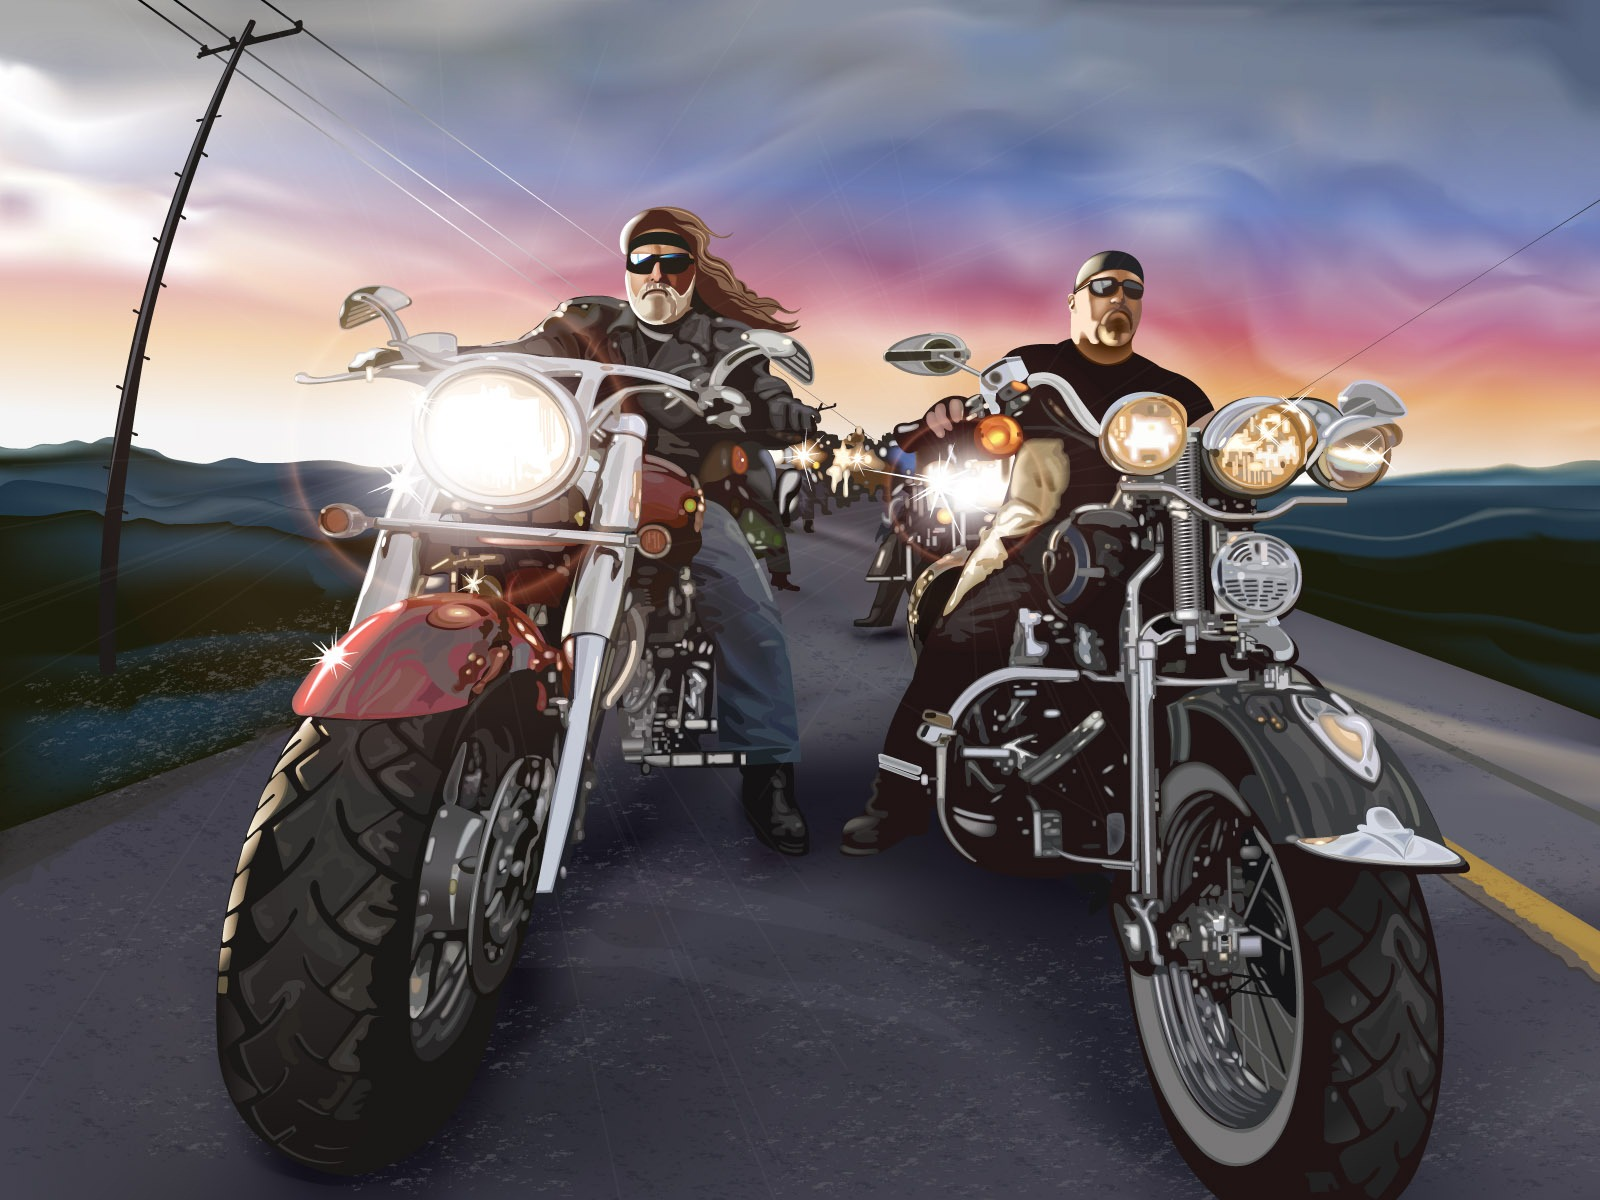 1600x1200 Oldschool choppers desktop wallpapers and stock photos